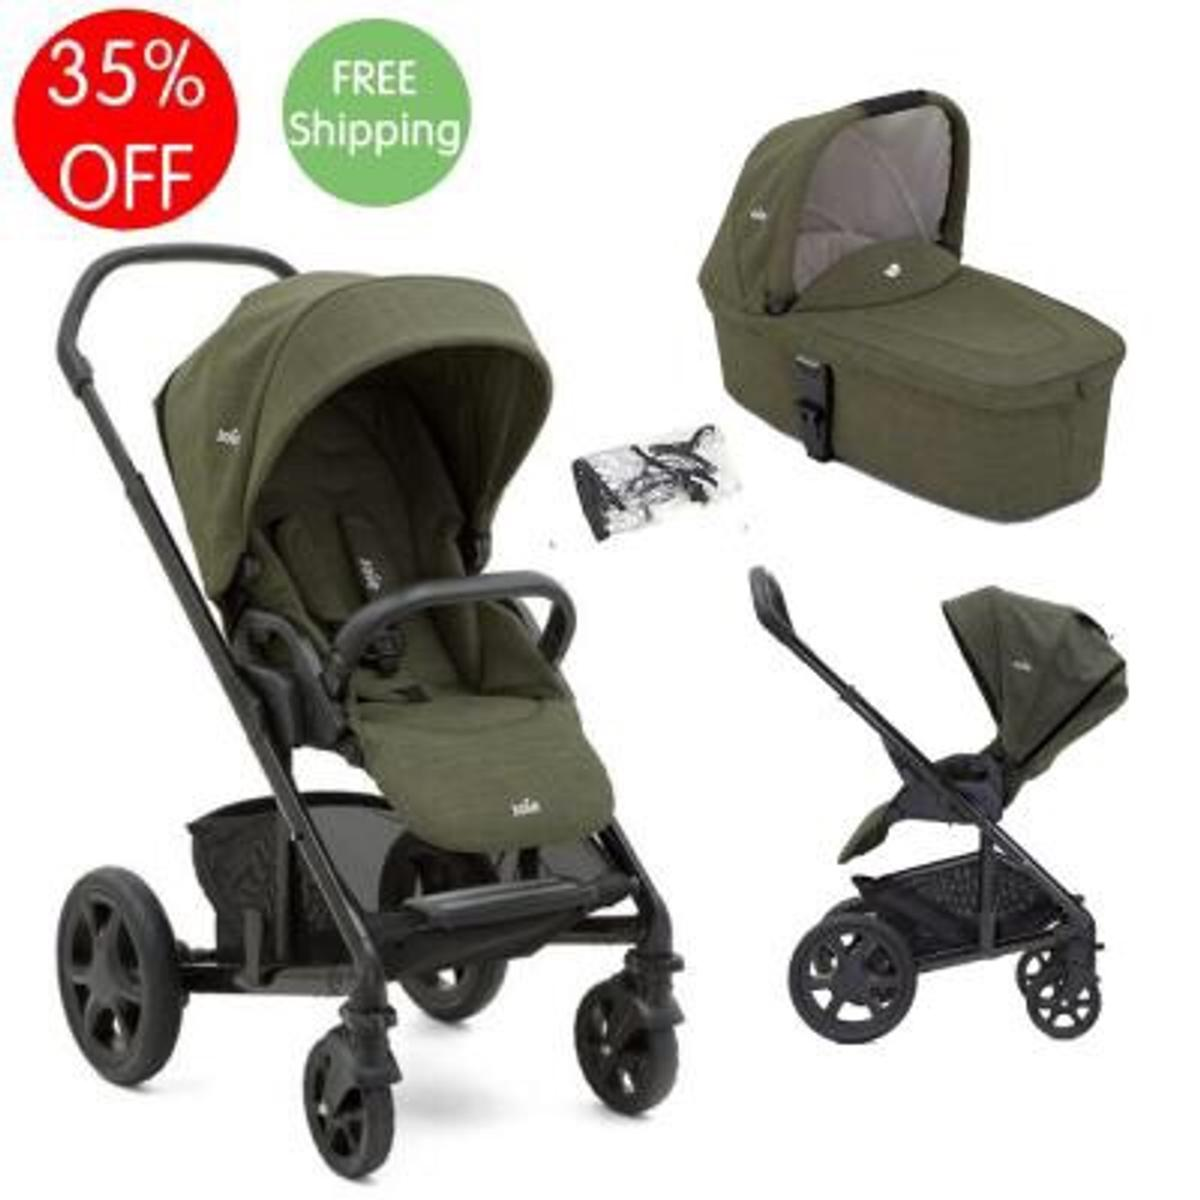 Travel System Joie Chrome Joie Chrome Dlx Buggy In Tw1 London For 90 00 For Sale Shpock